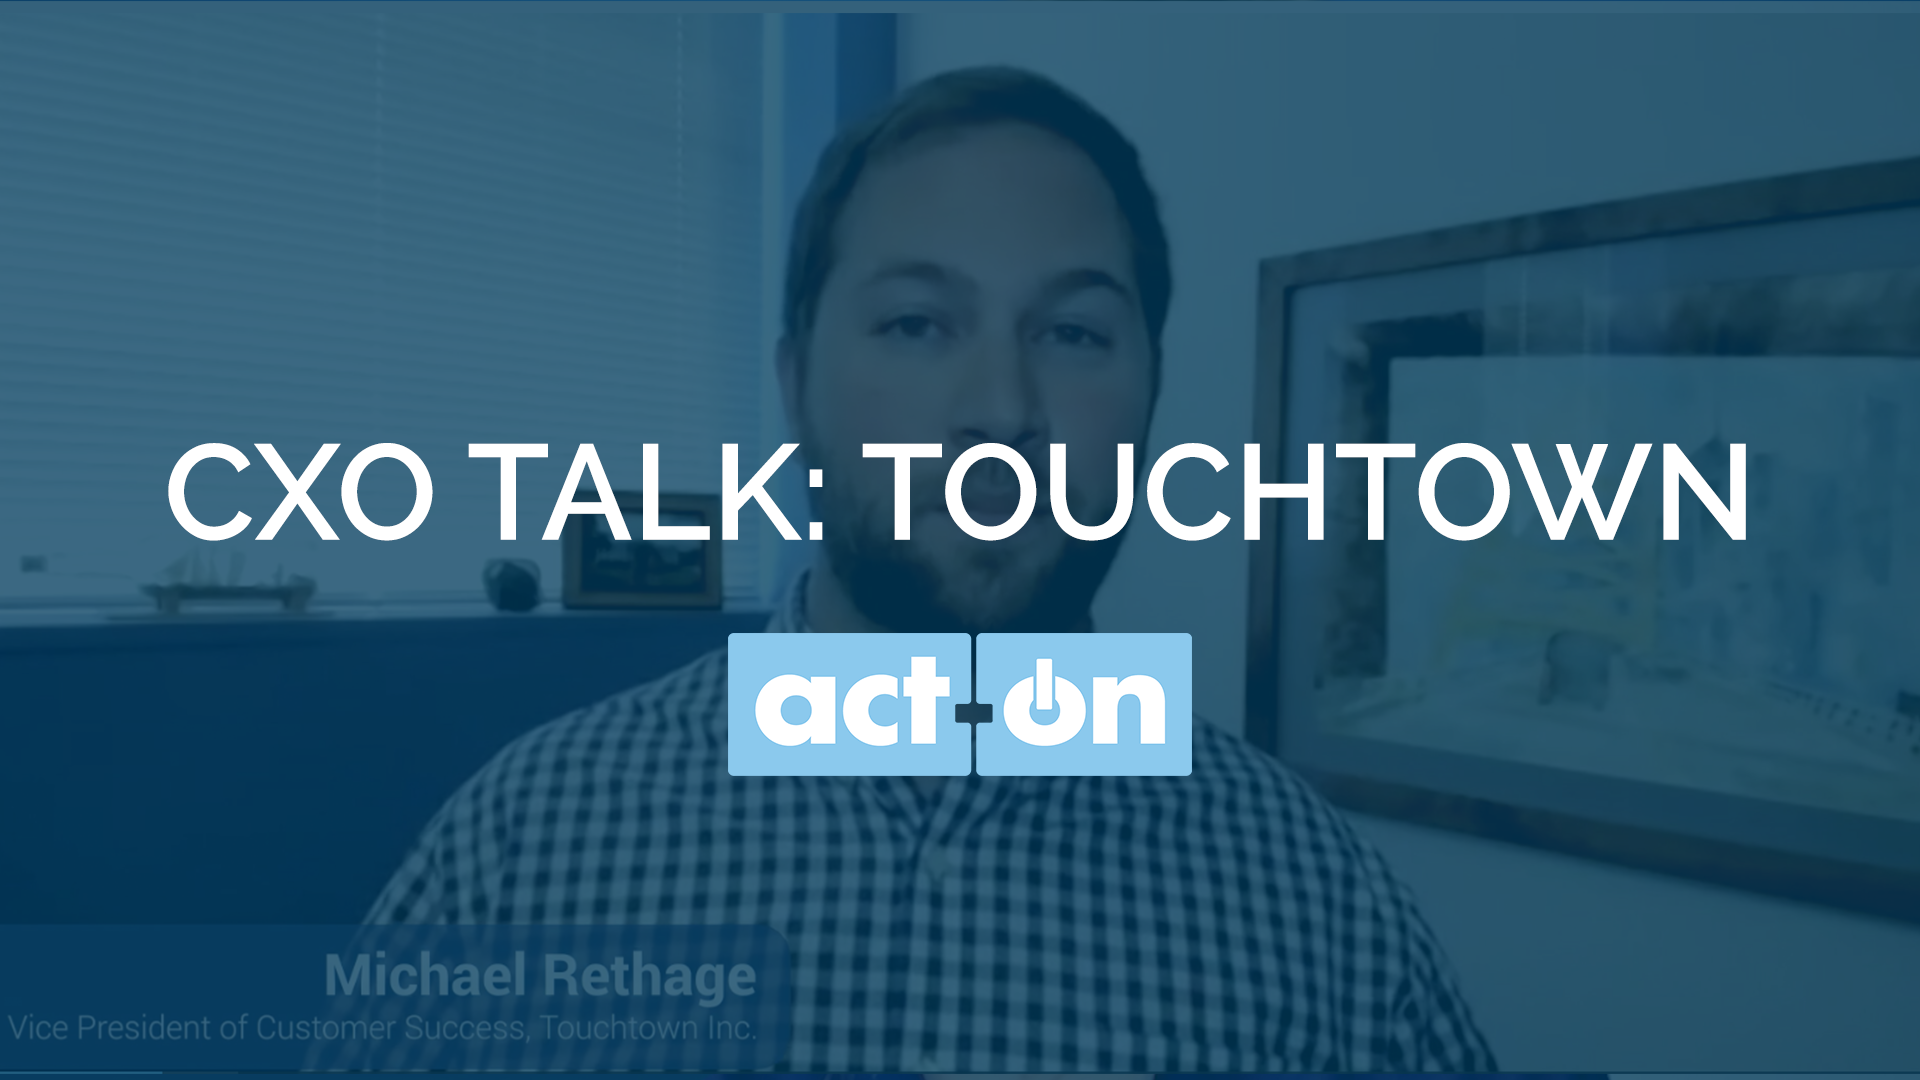 CXO Talk: Touchtown